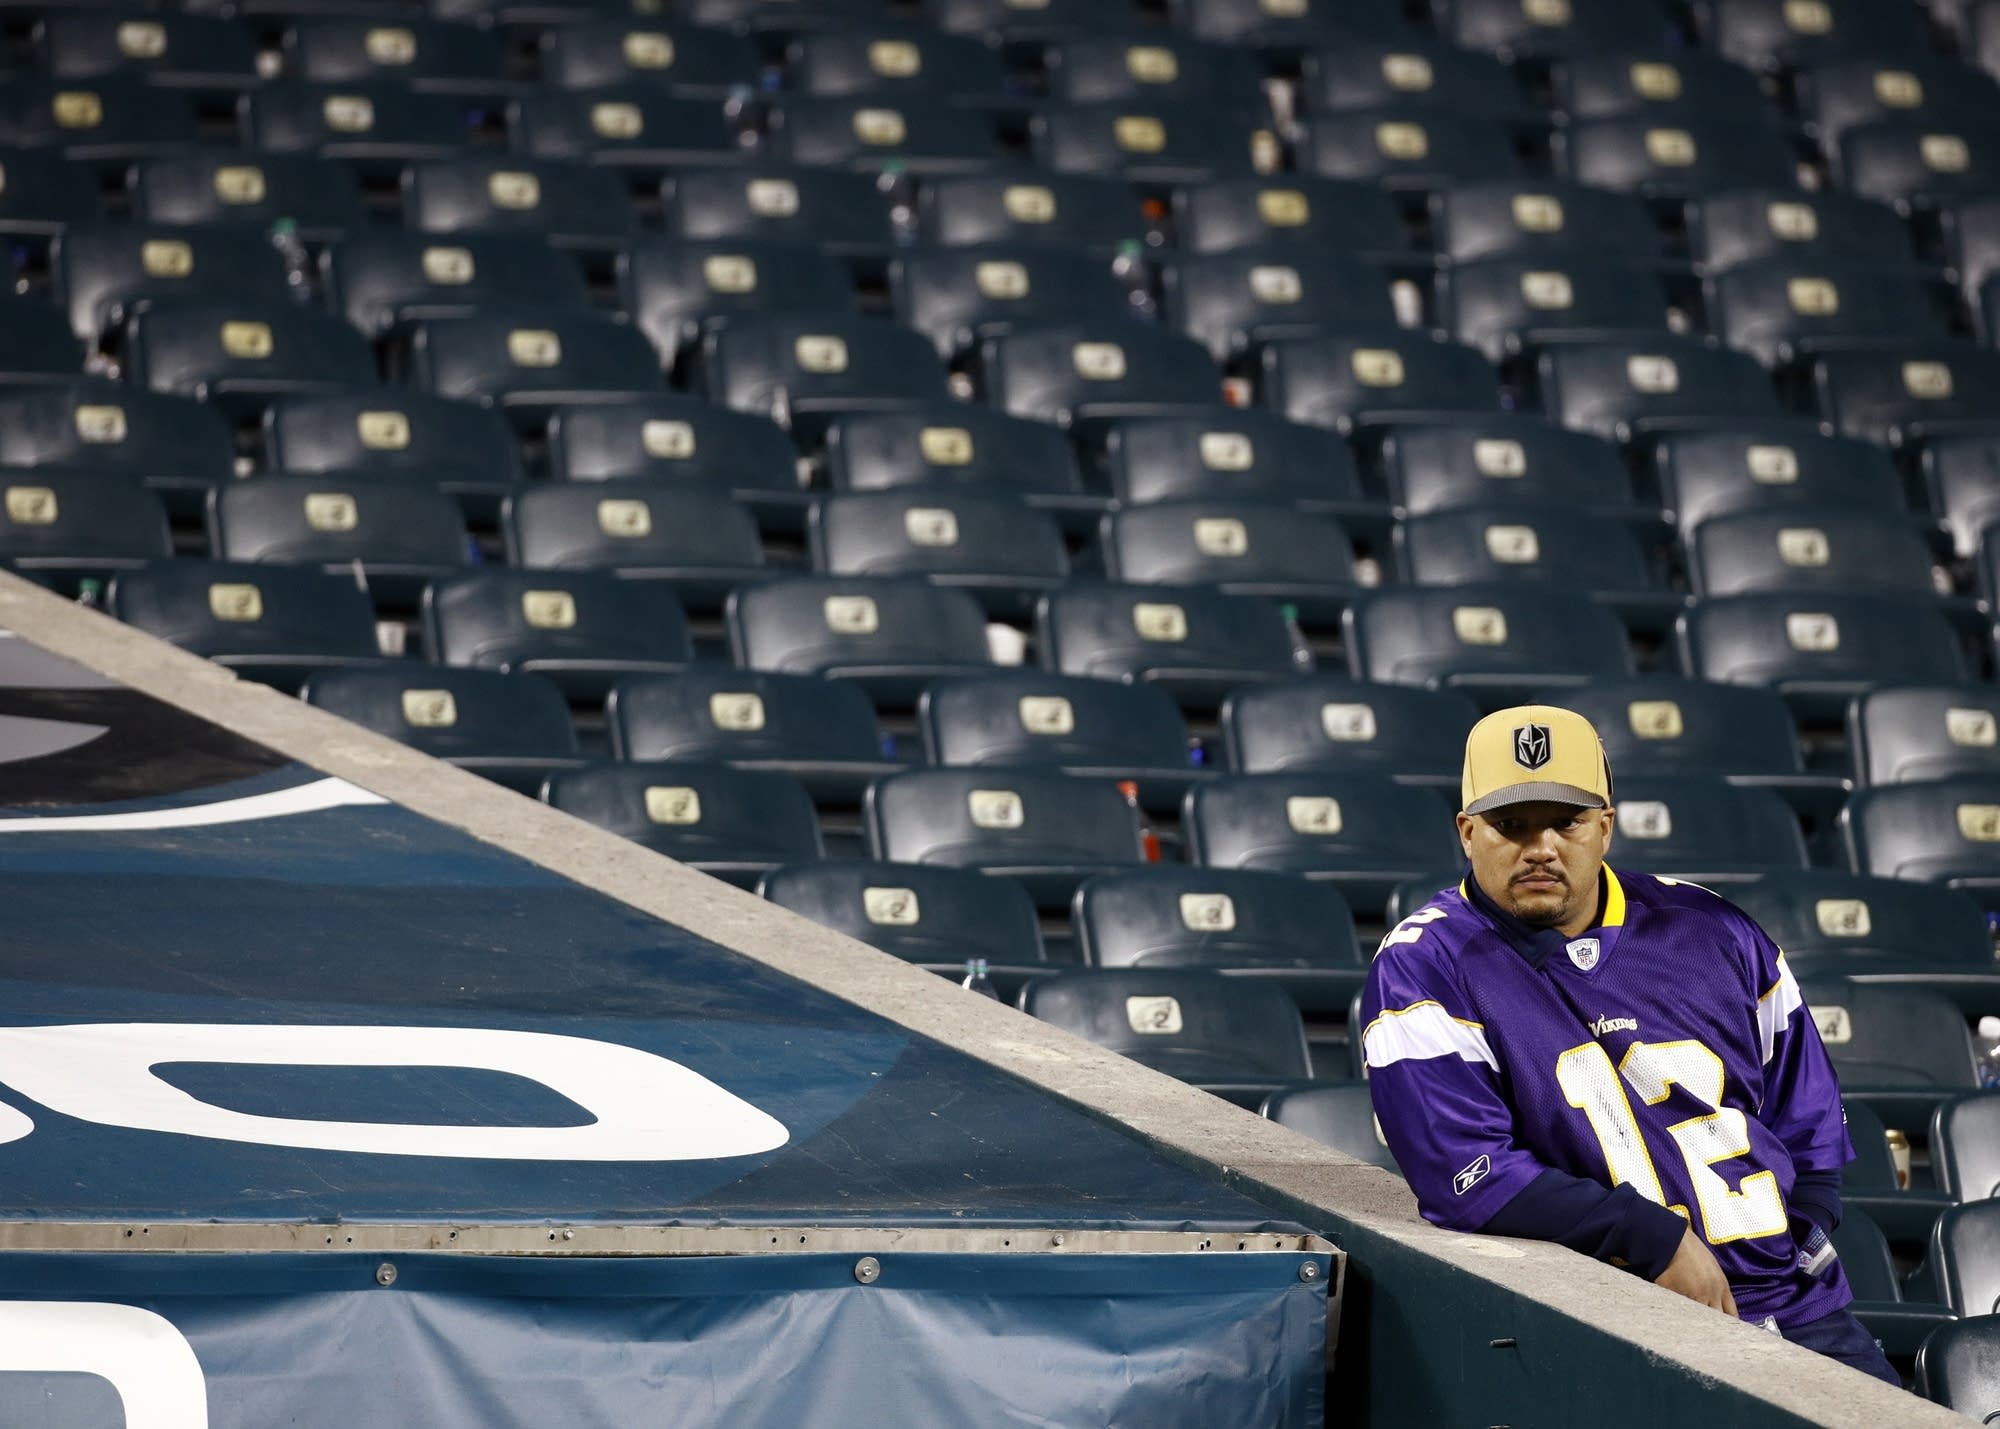 A Minnesota Vikings fan looks out after the NFC championship game.